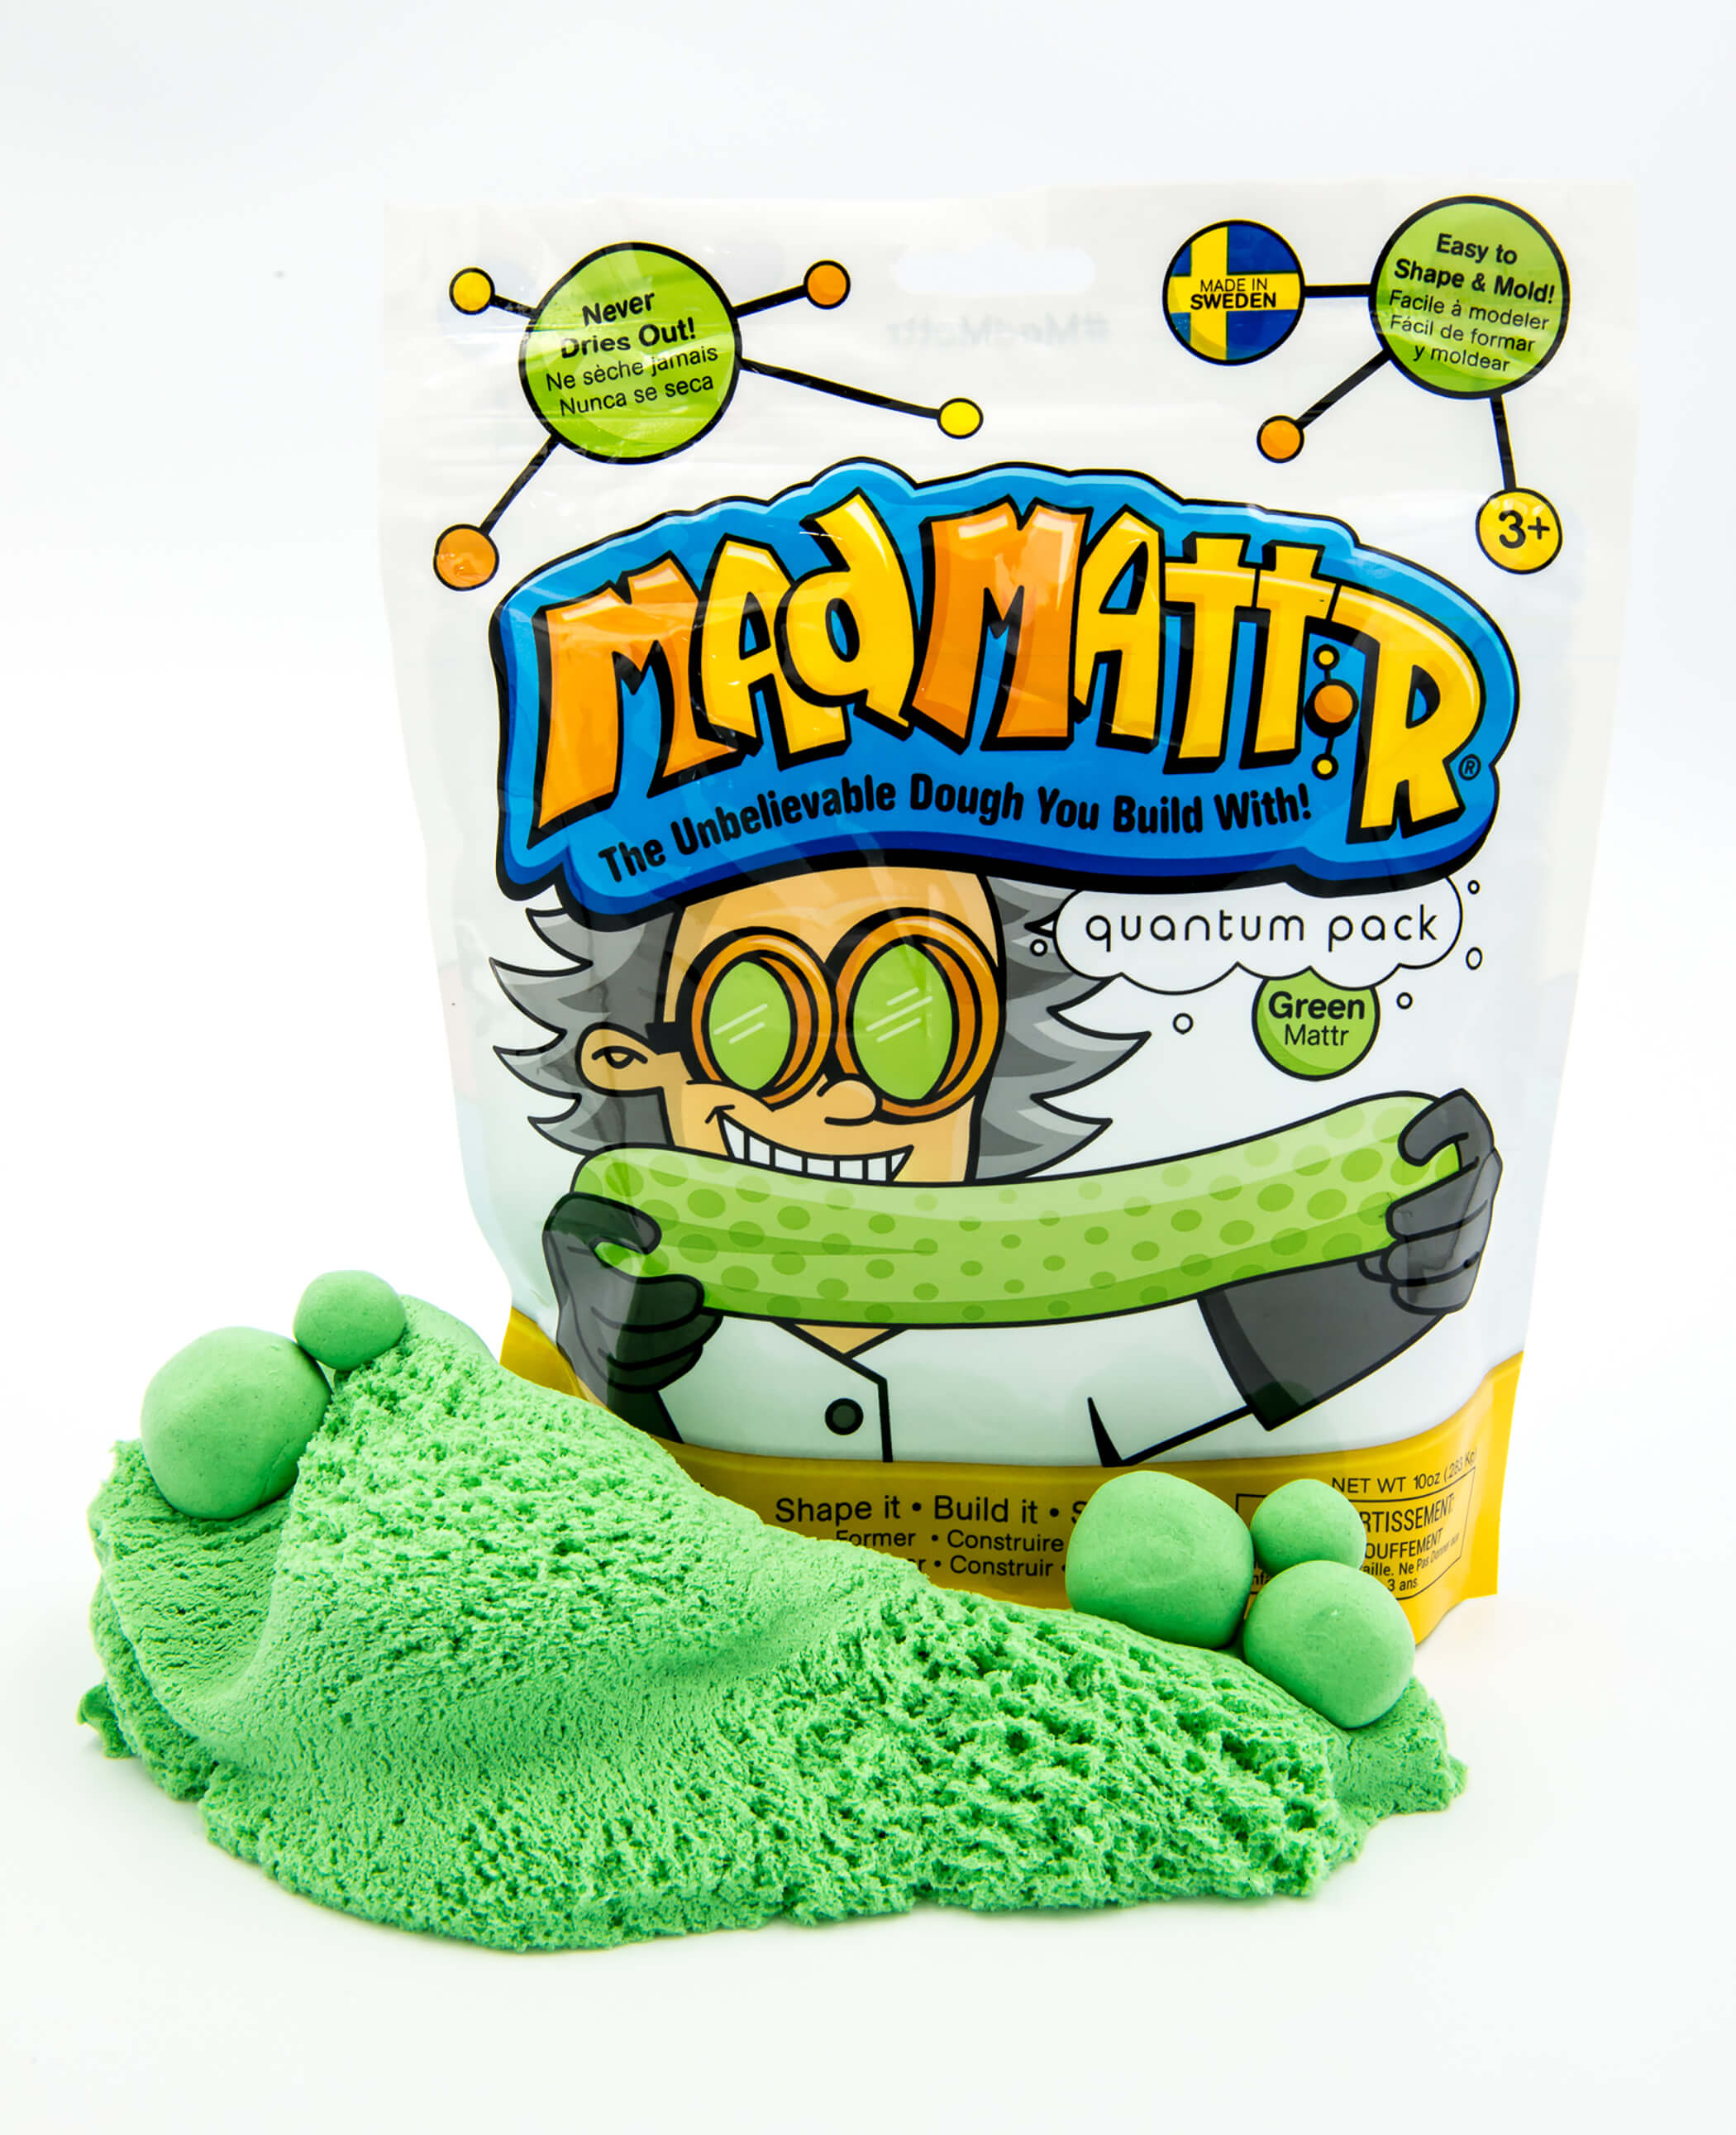 IMAGE 4 - Mad Mattr Quantum Pack - Green with MM.jpg